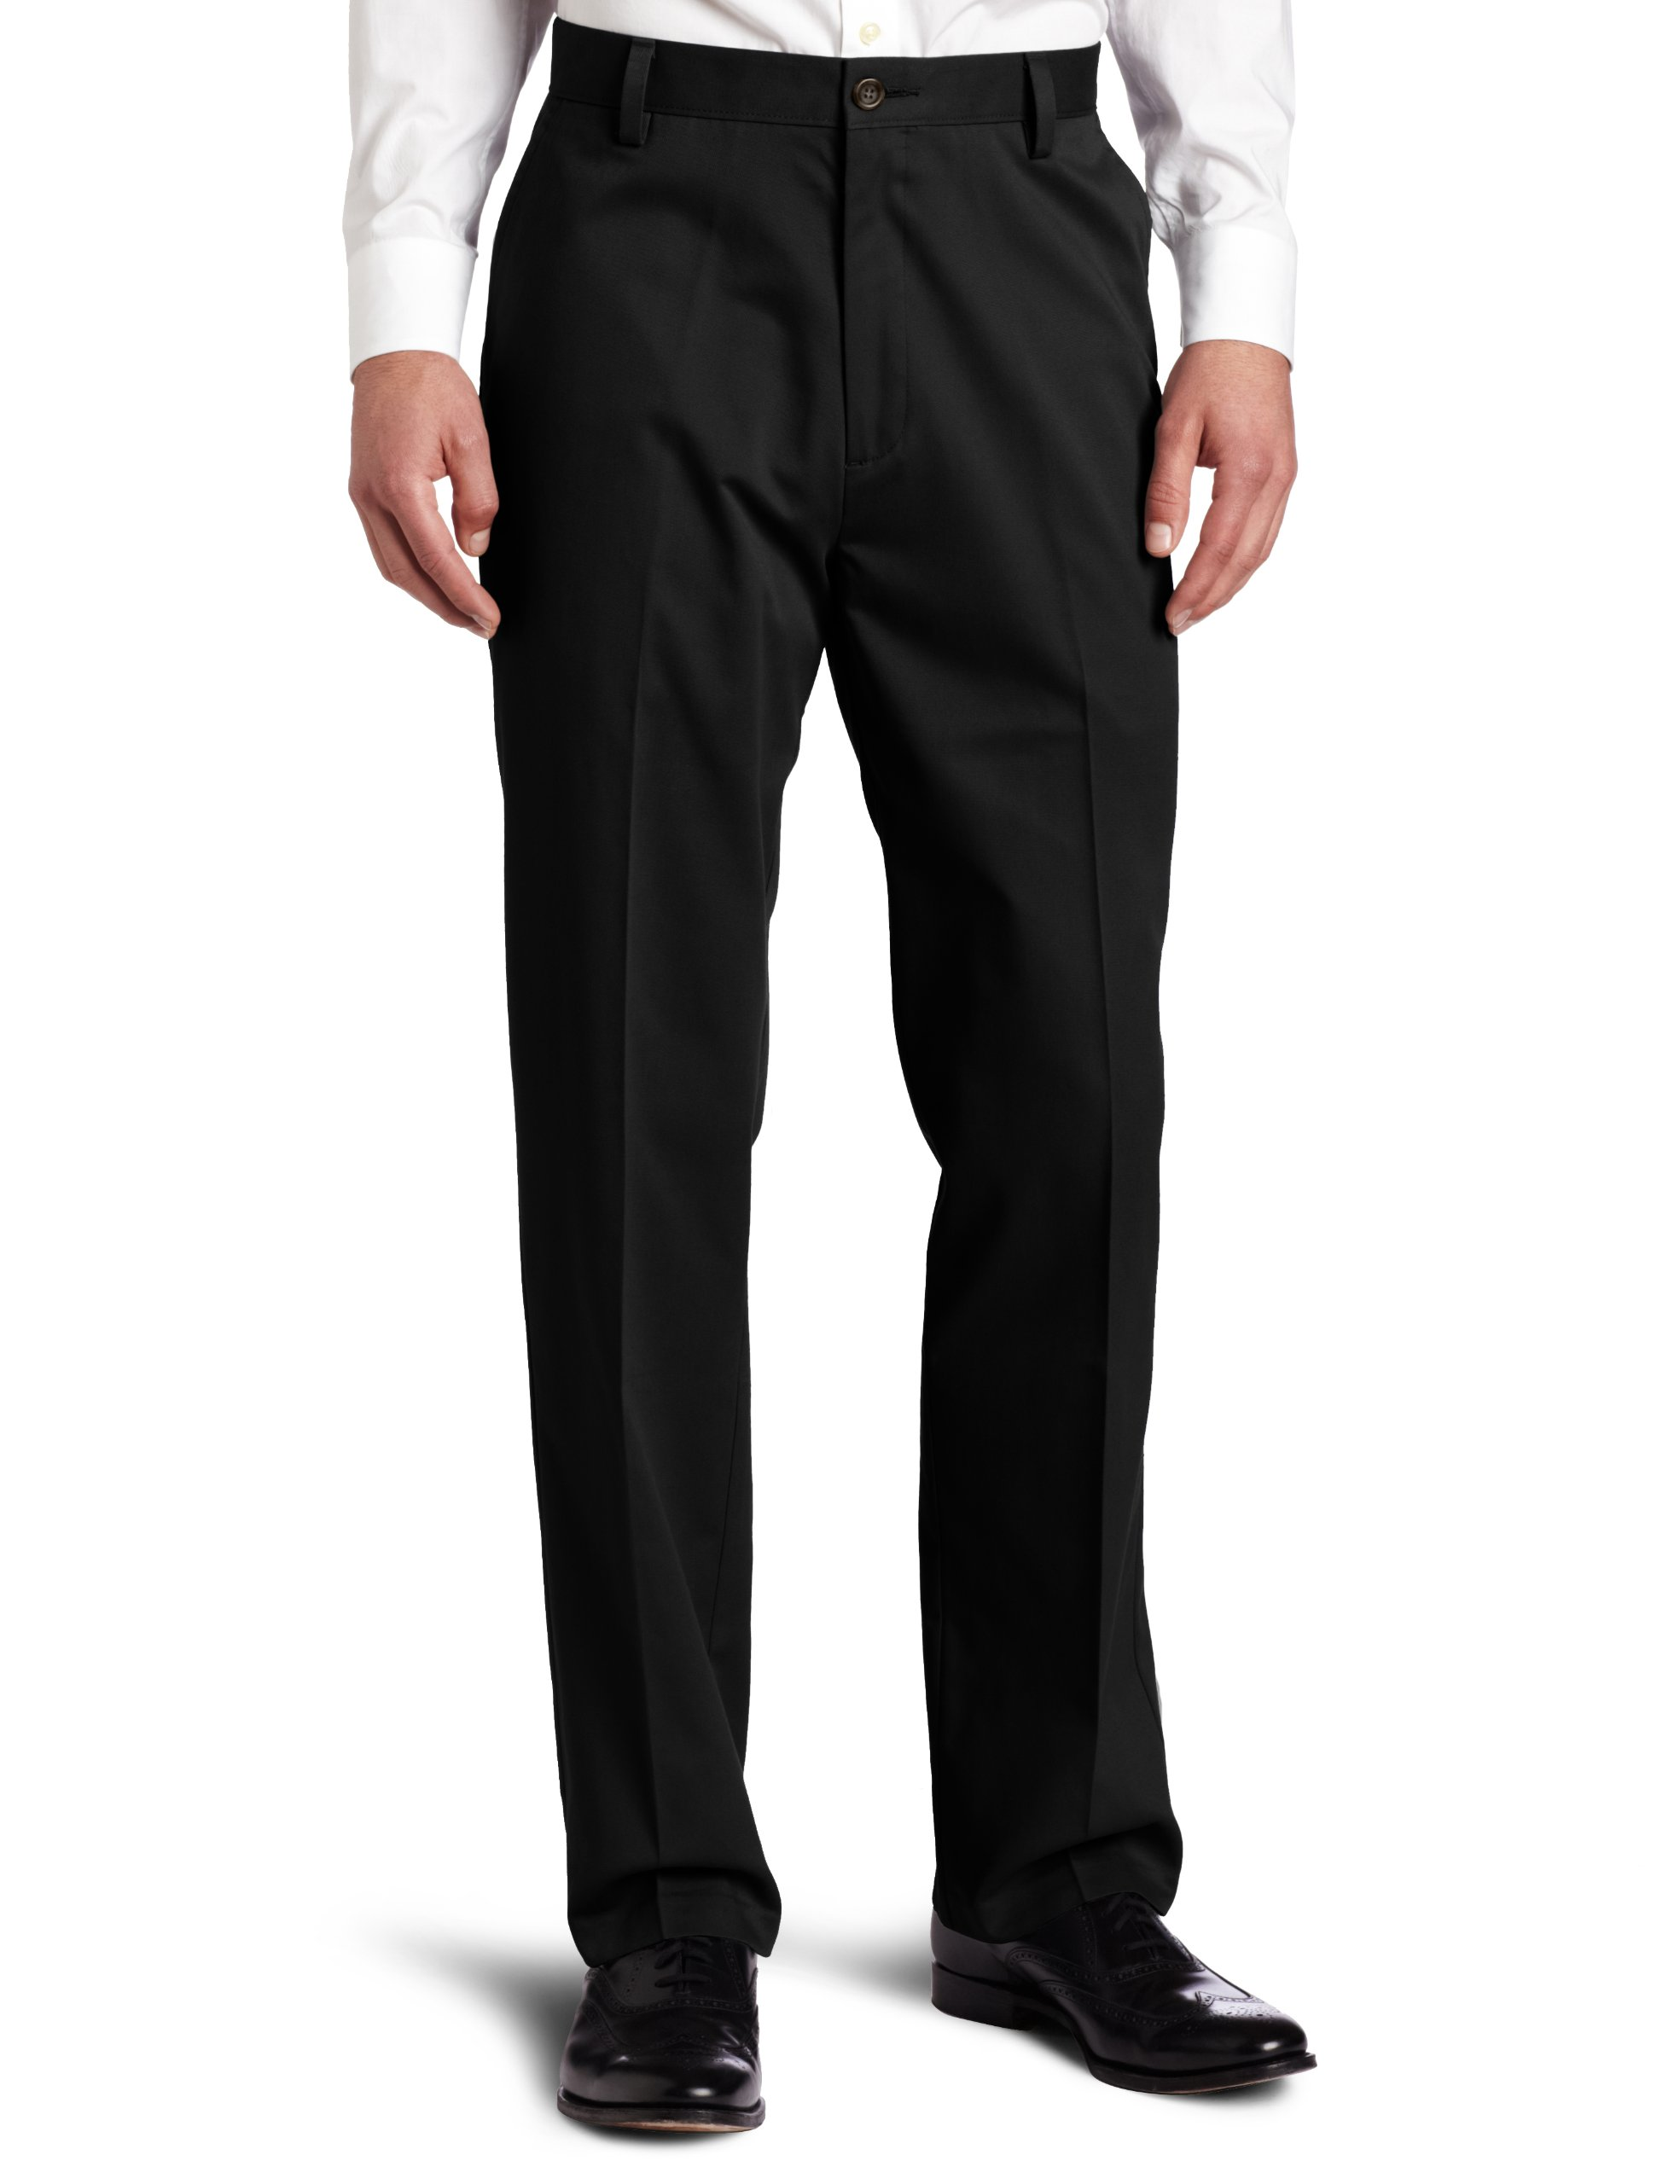 Dockers Men's Easy Khaki D3 Classic-Fit Flat-Front Pant, Black, 34W x 32L by Dockers